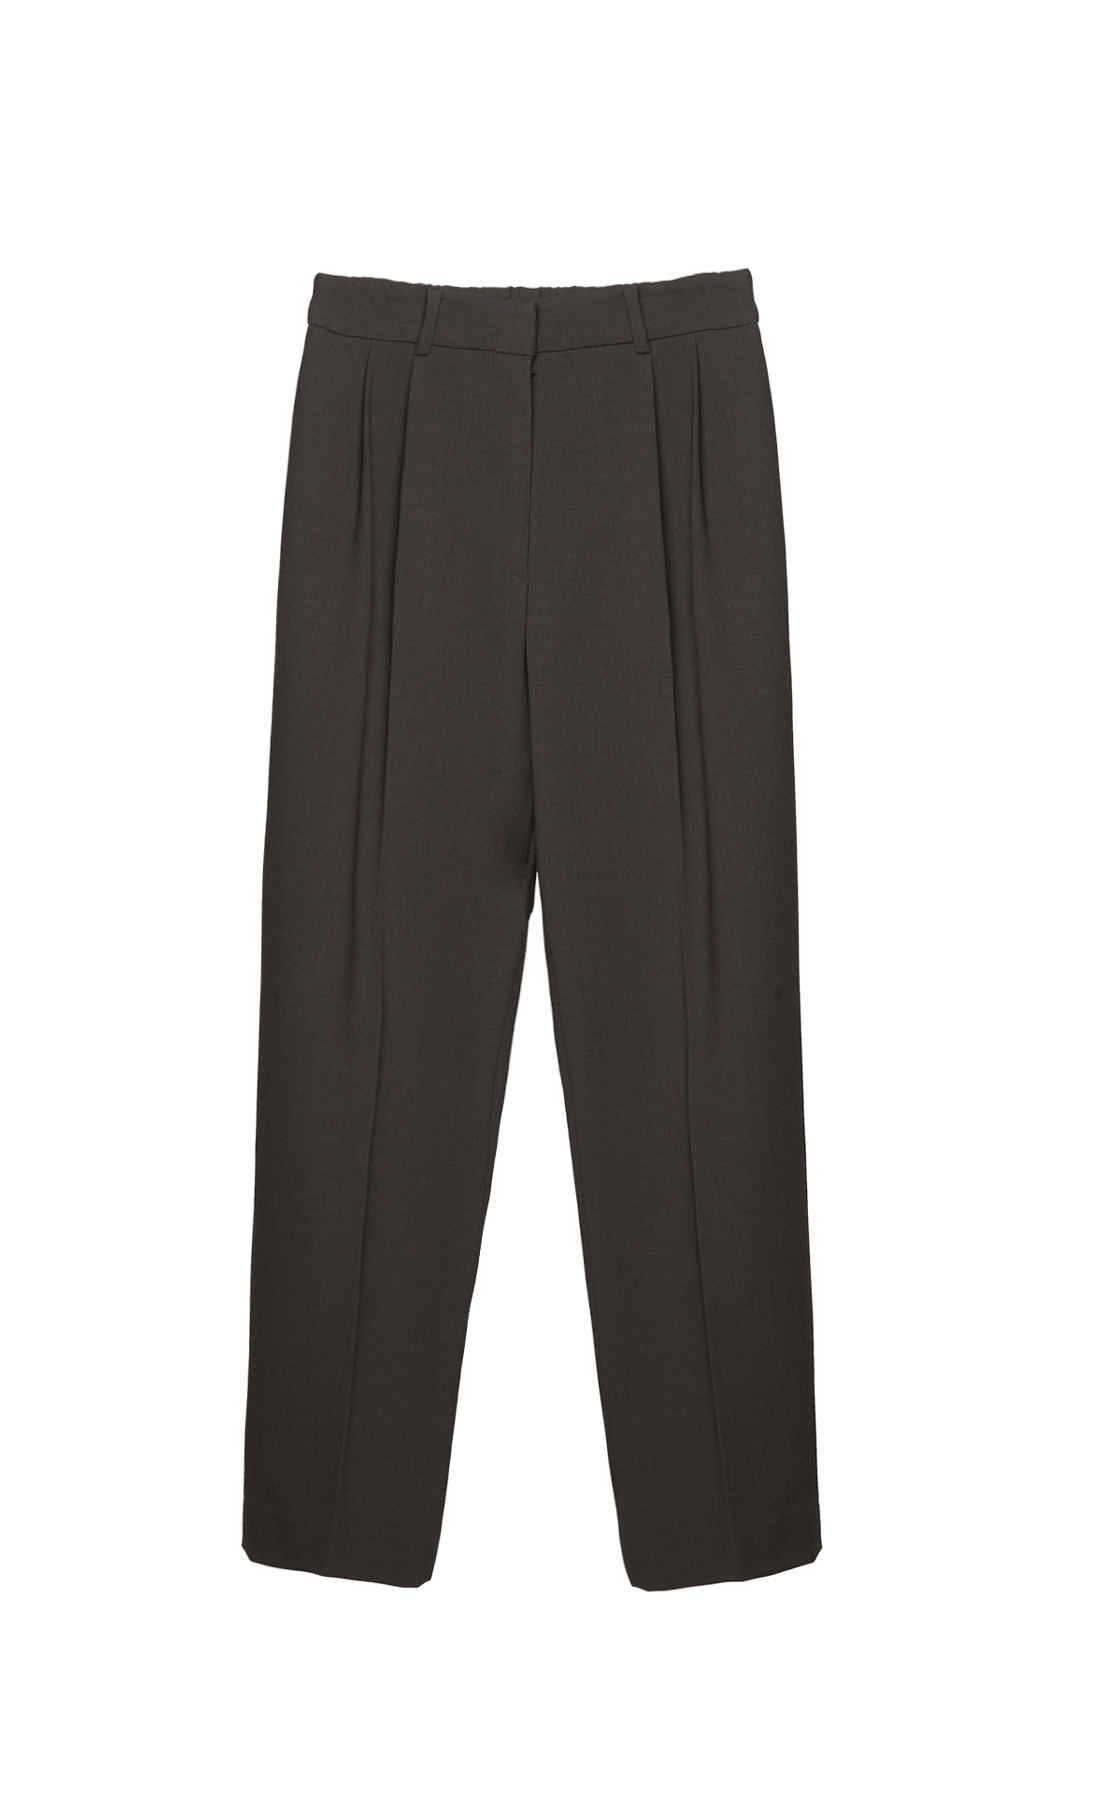 BACK BANDING TWO-TUCK WOOL PANTS